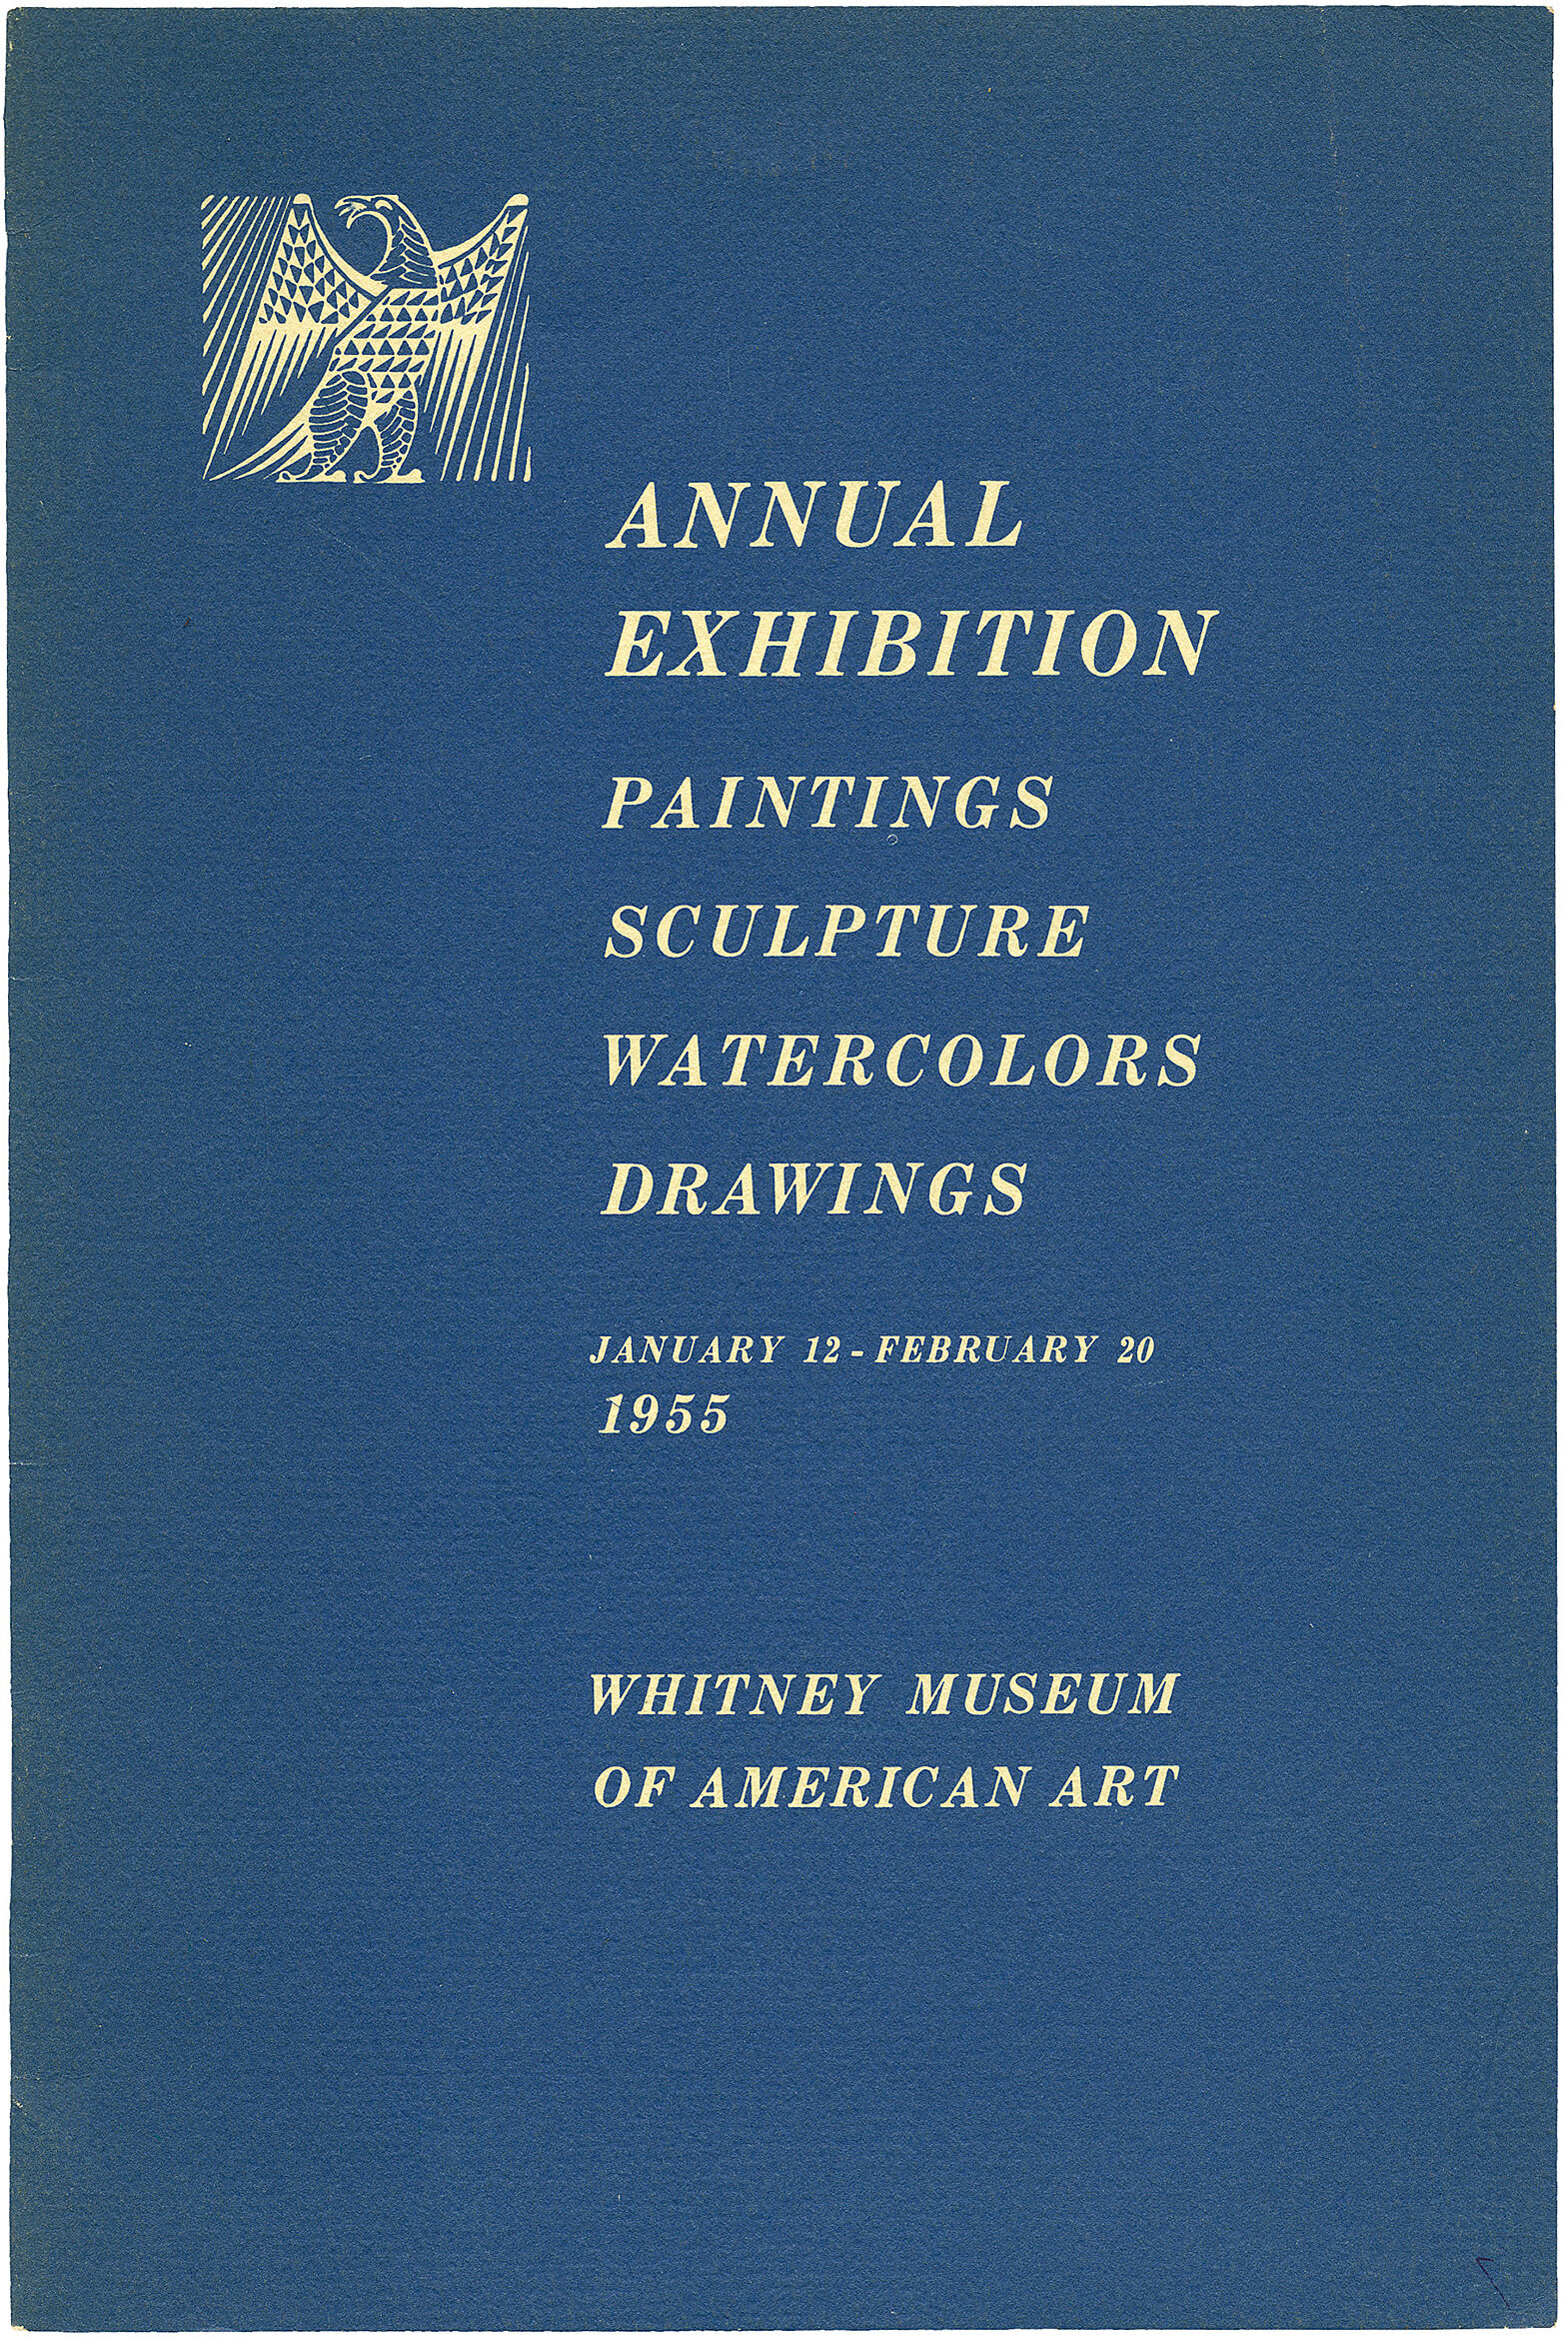 Cover for 1955 Annual Exhibition of Contemporary American Painting, Sculpture, Watercolors and Drawings catalogue